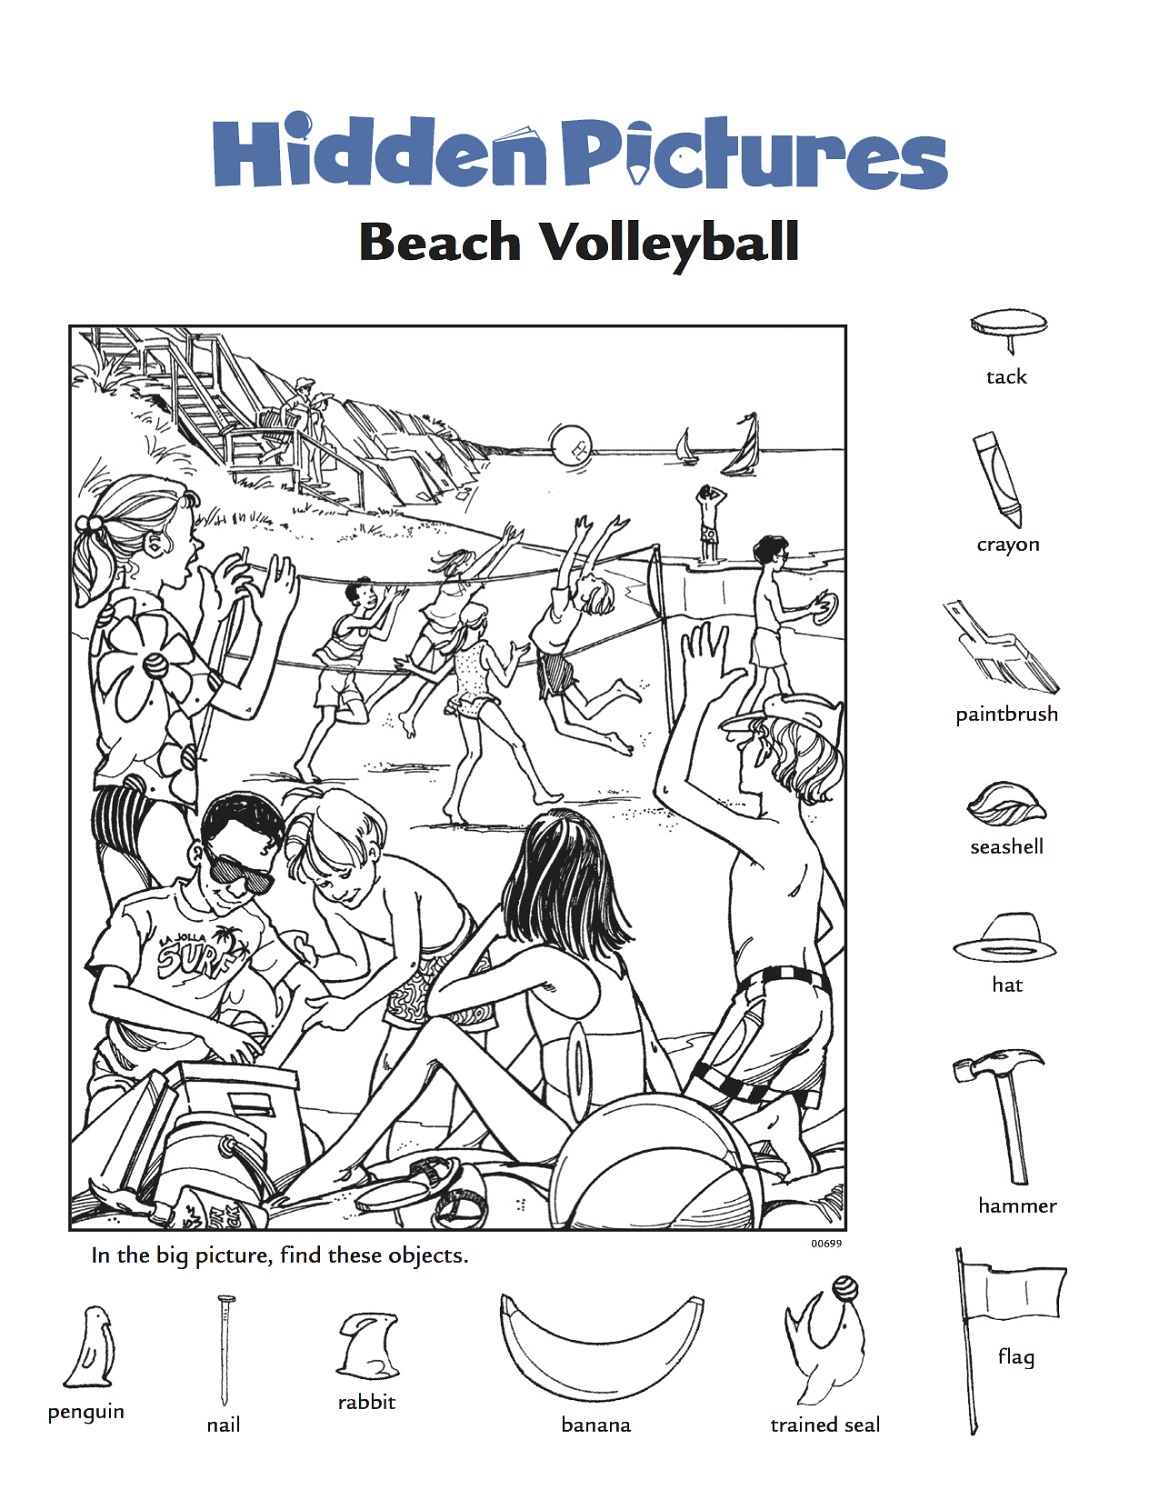 Find The Hidden Objects Worksheets The Best Worksheets Image